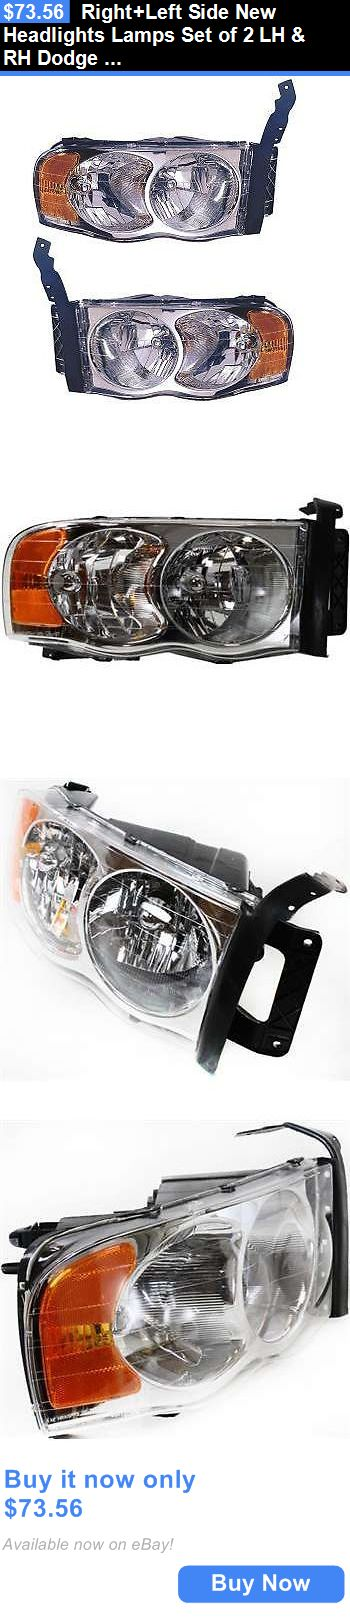 auto parts - general: Right+Left Side New Headlights Lamps Set Of 2 Lh And Rh Dodge Ram 1500 Truck Pair BUY IT NOW ONLY: $73.56